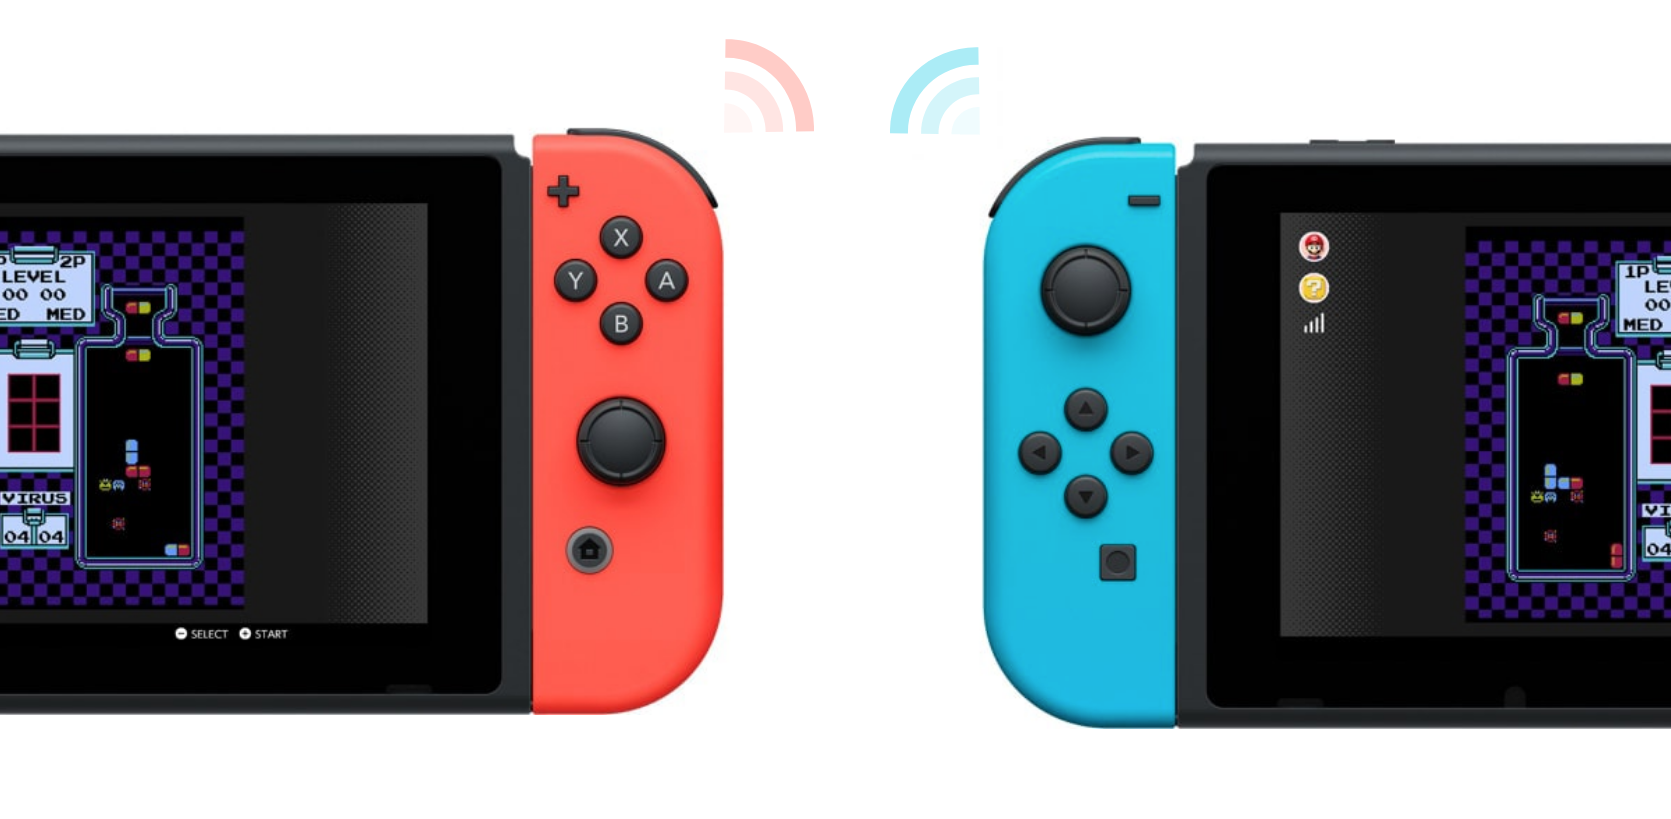 Nintendo Switch Online costs $20 per year and comes with 20 online-playable NES games